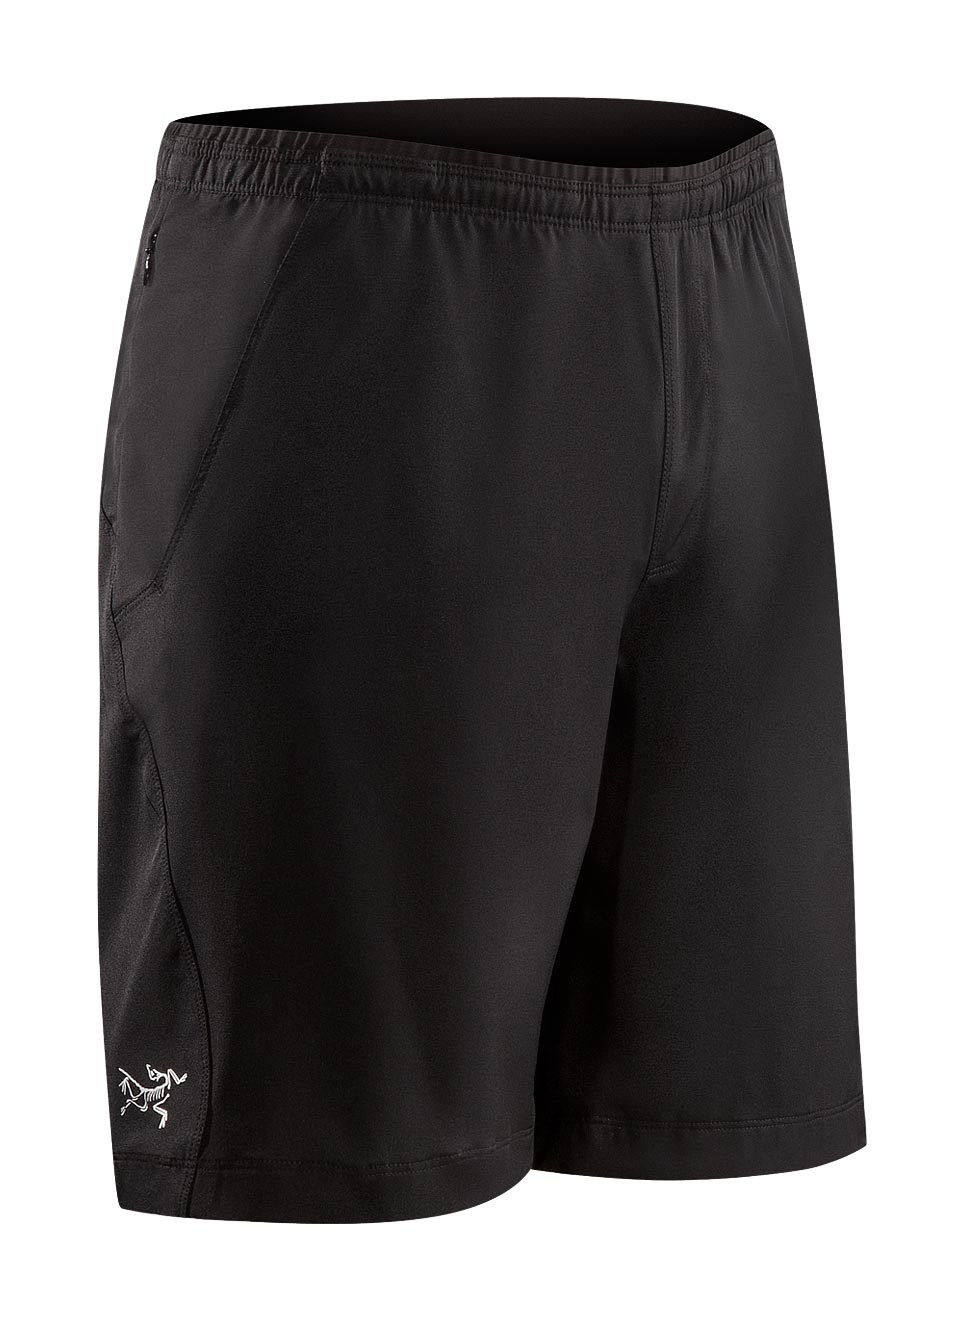 Arcteryx Black Torus Short